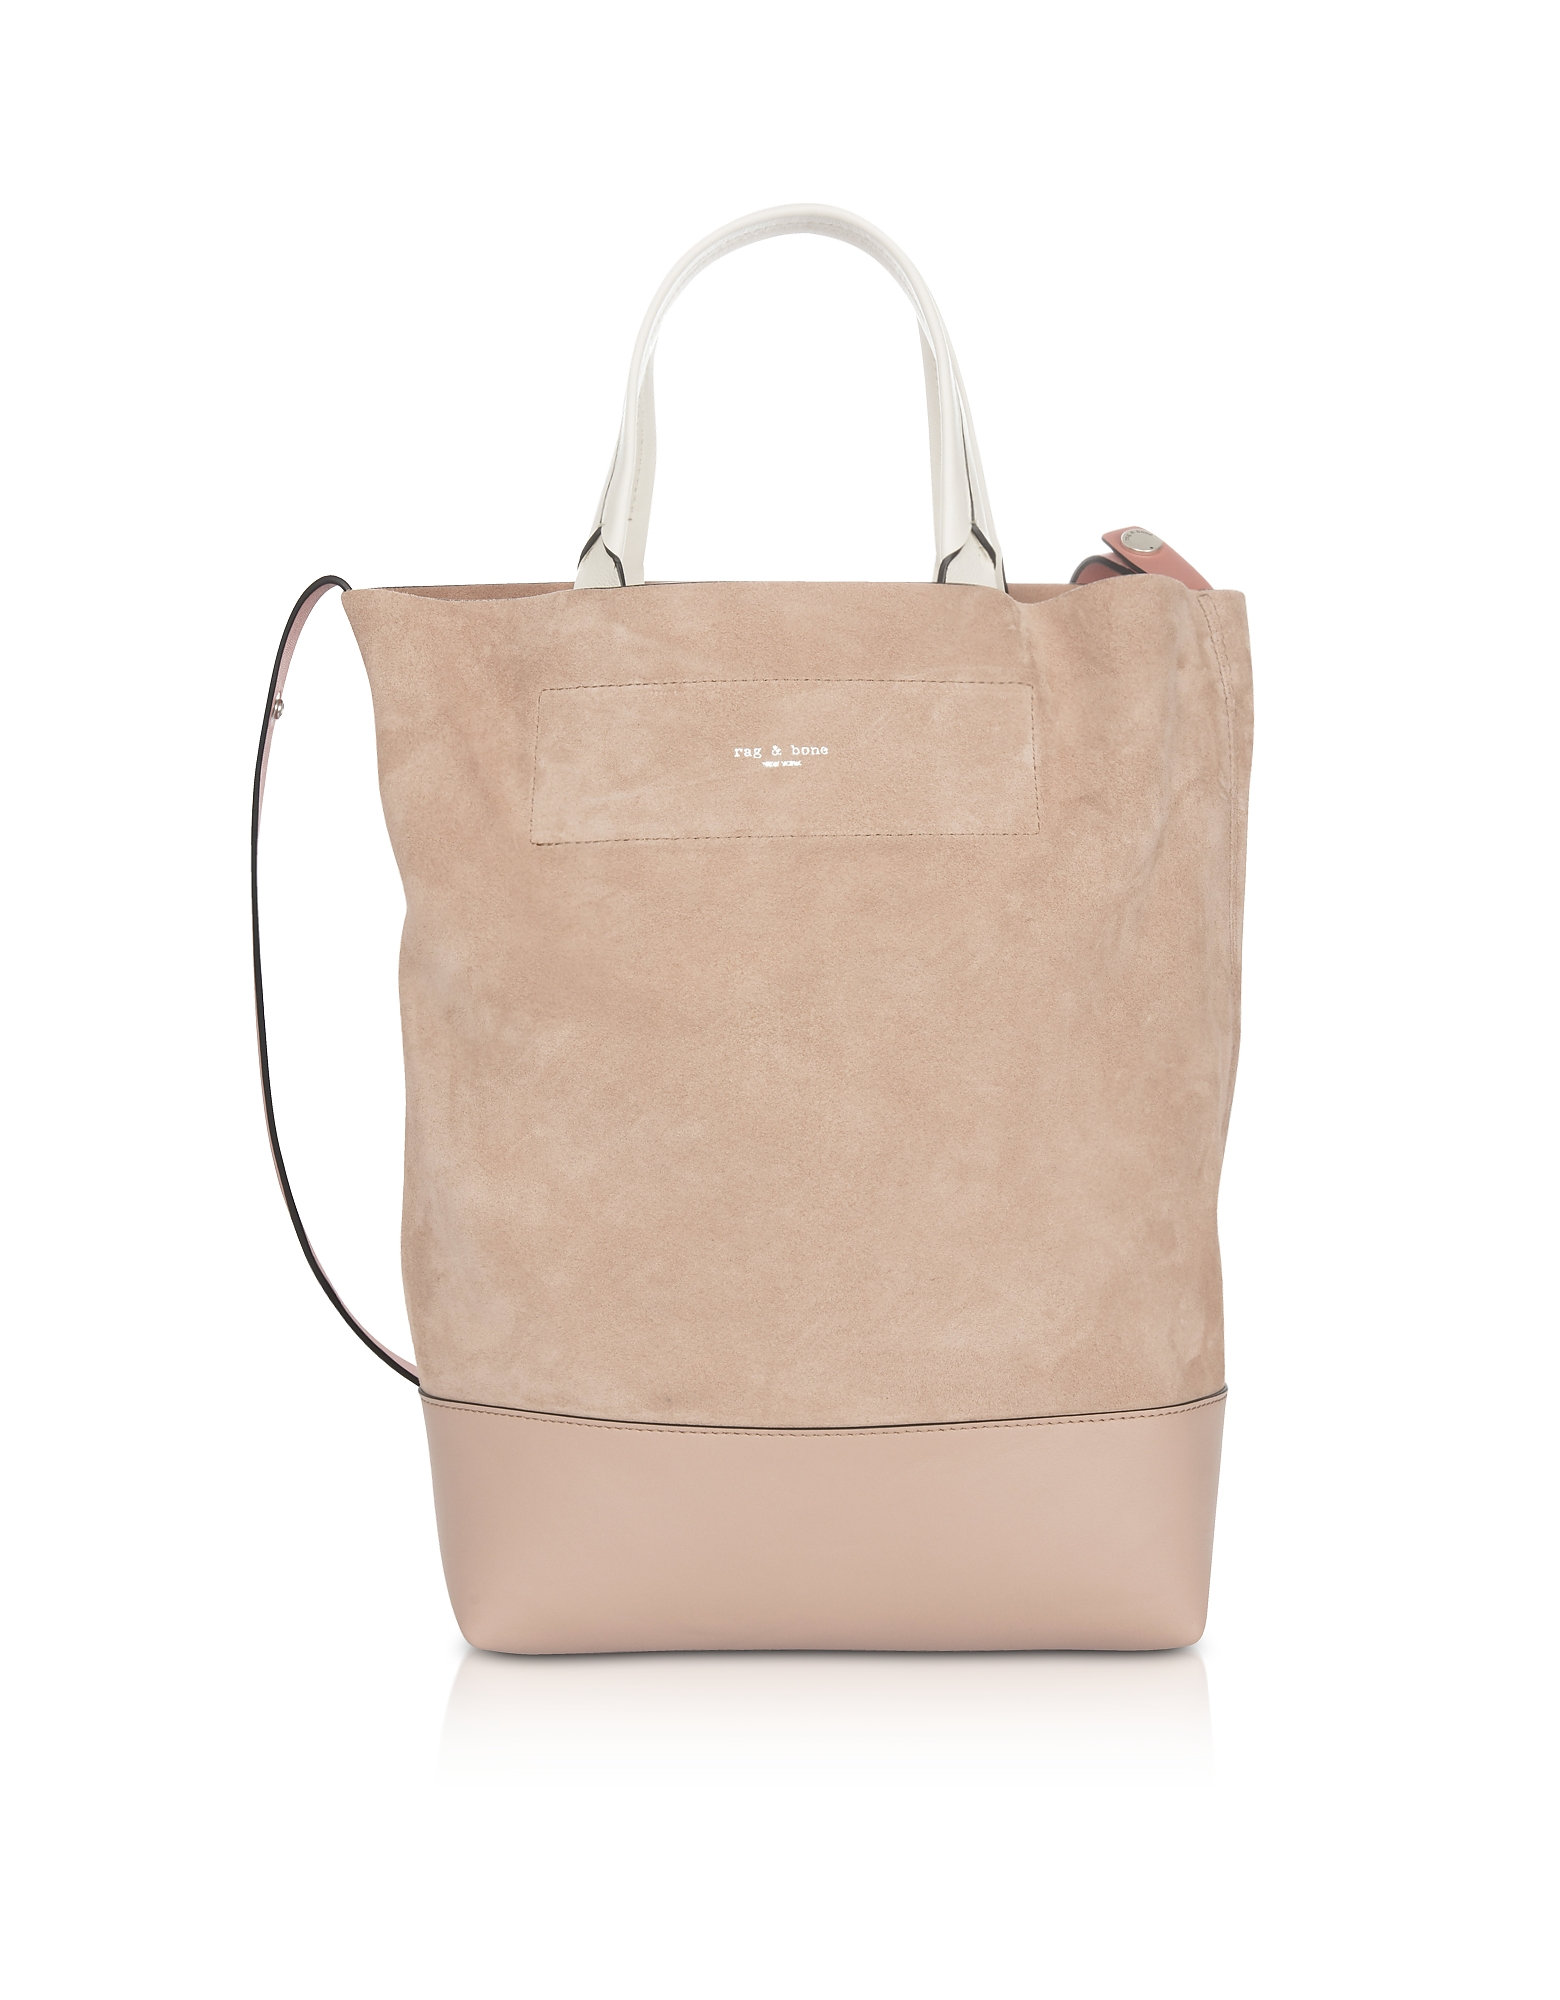 Walker Convertible Shopping Bag in Suede Nude